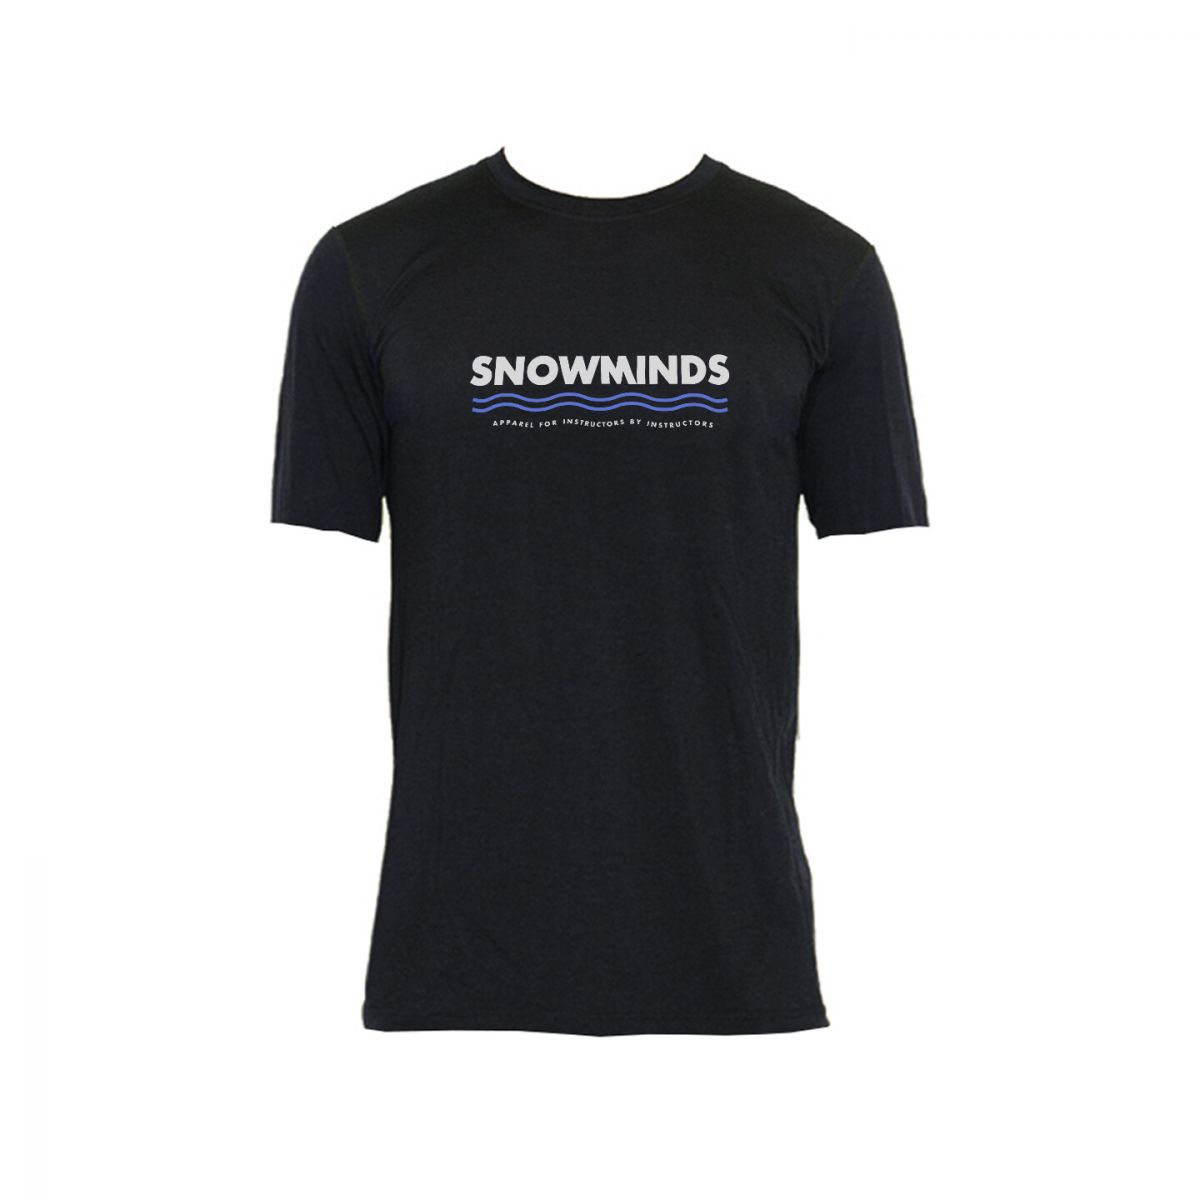 Merino Wool Tee - Snowminds - Grey - Unisex